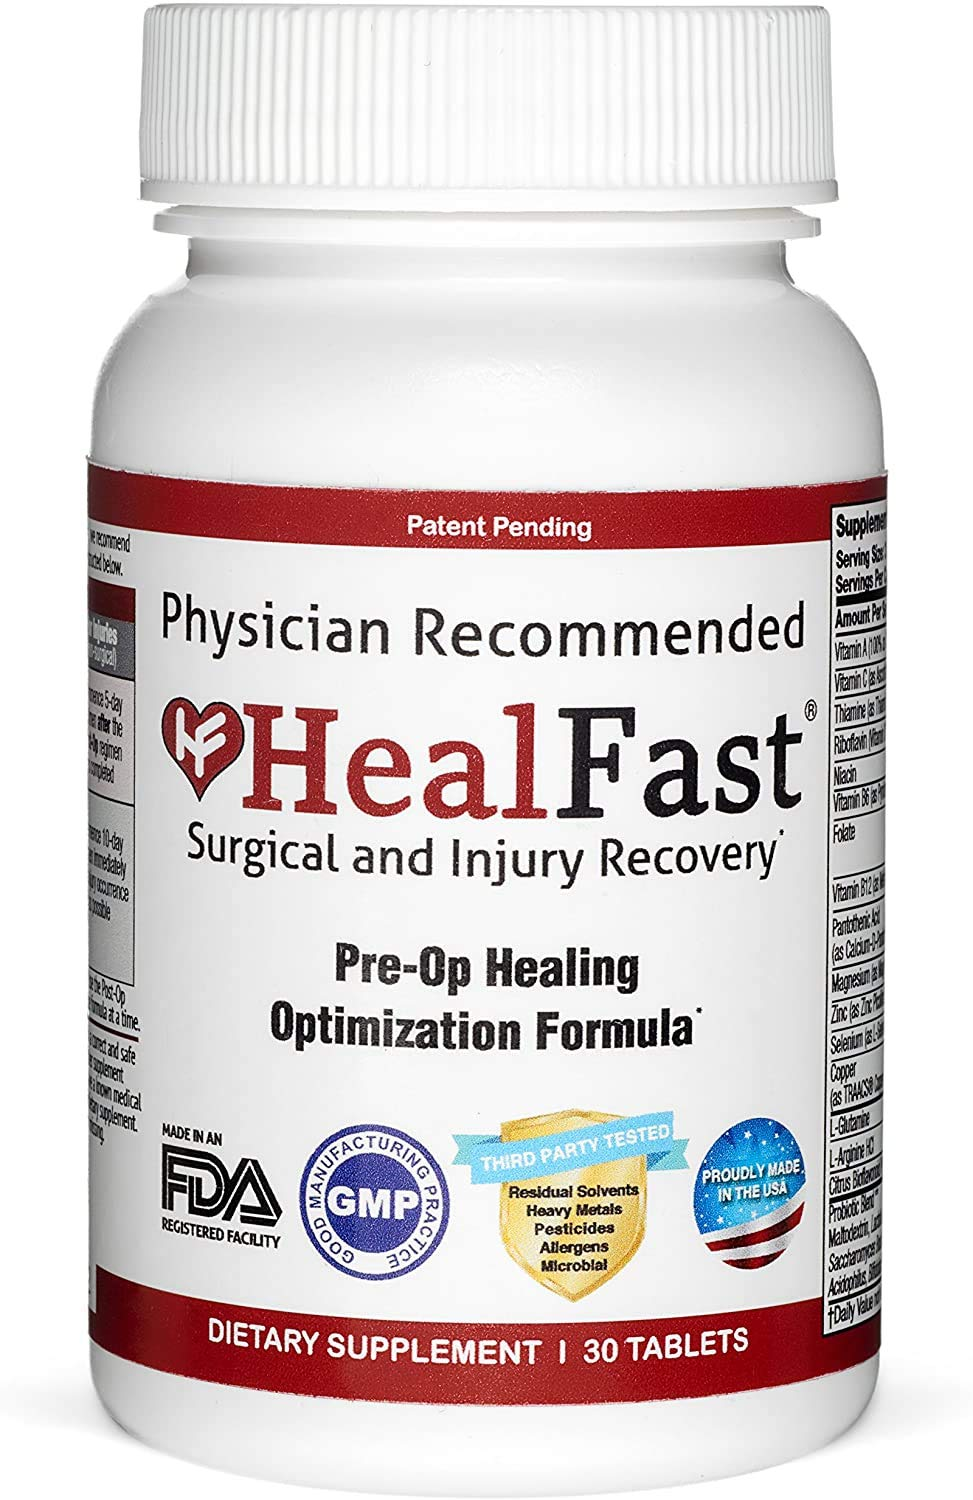 HealFast Surgery & Injury Recovery Supplement (Pre-Op): Supports Pre Surgery Optimization - for Wound Healing, Pain Relief, Scar Treatment & Bruising w/ Amino Acids, Vitamins, Probiotics - 30 Capsules